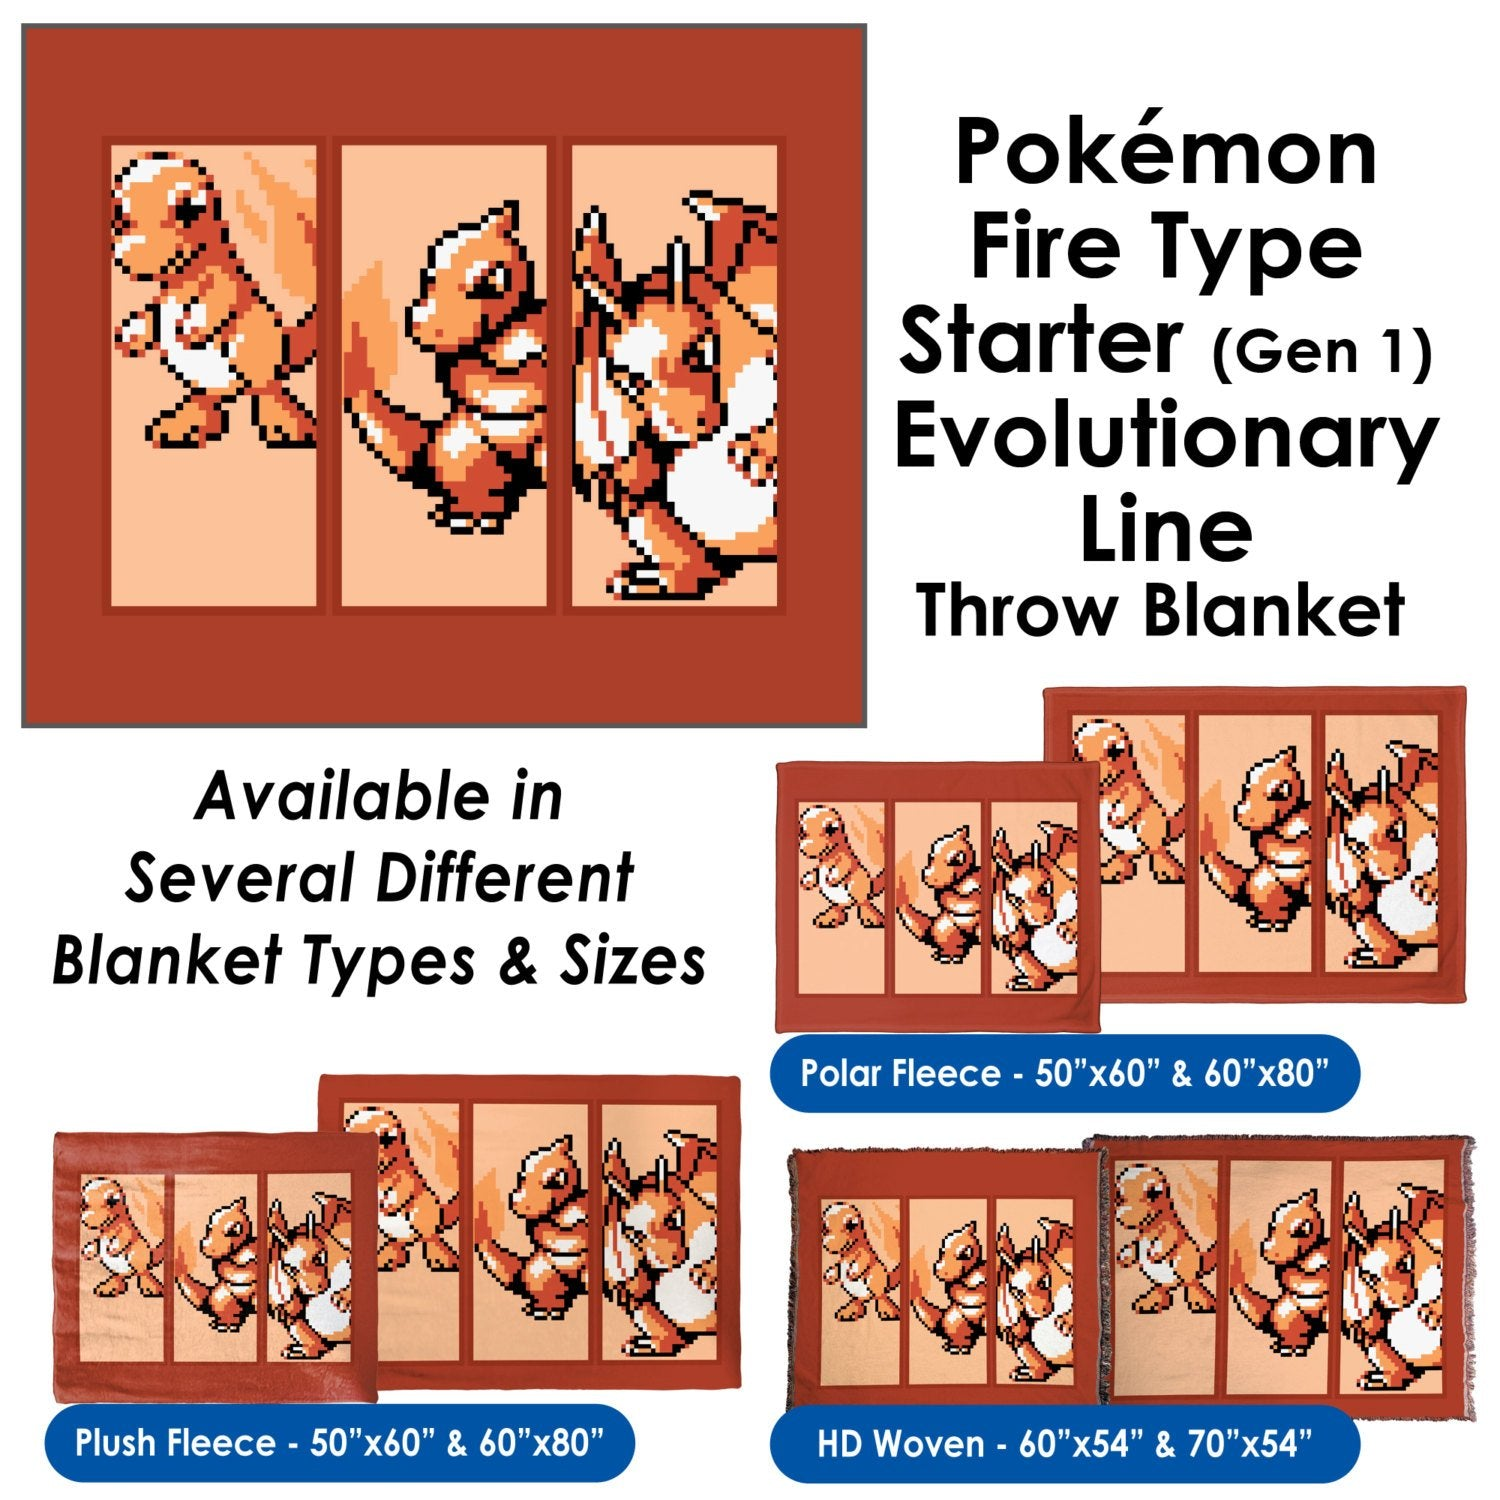 Pokemon Fire Type Starter (Gen 1) Evolutionary Line - Throw Blanket / Tapestry Wall Hanging